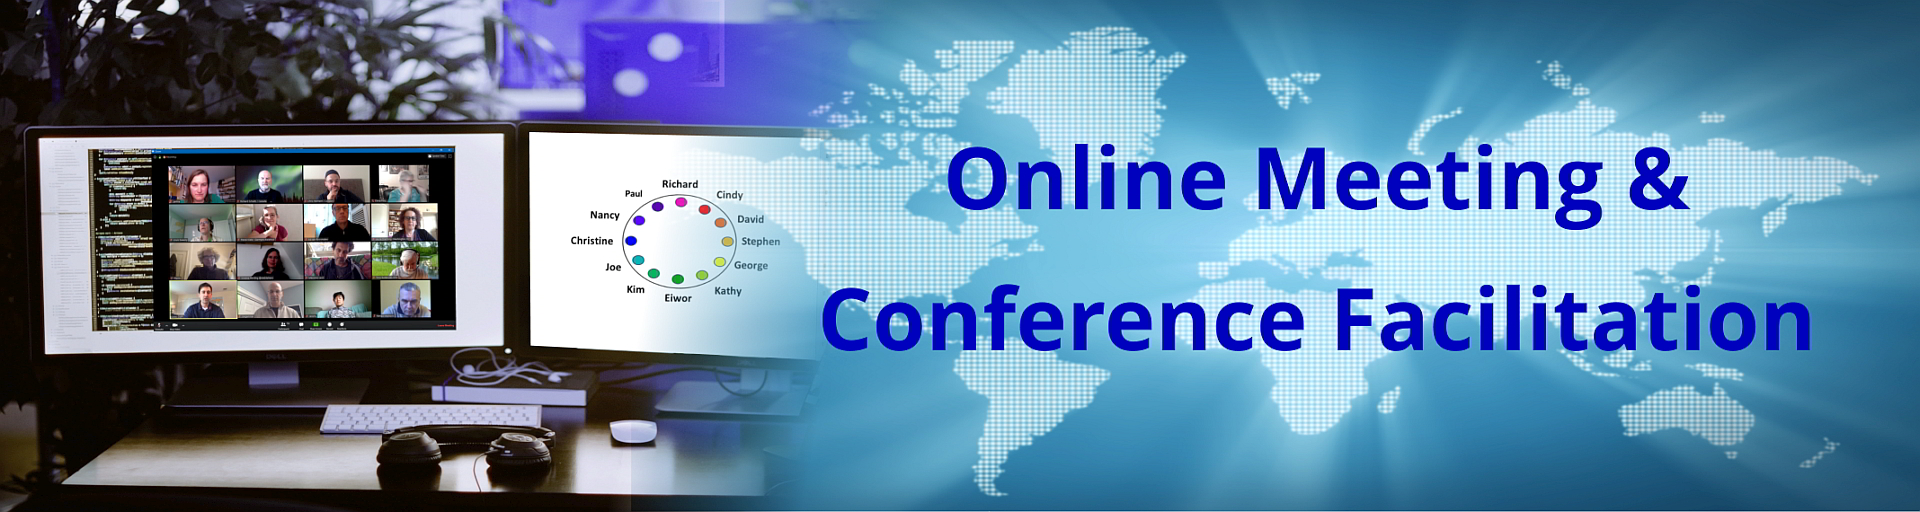 Online meeting and conference facilitation